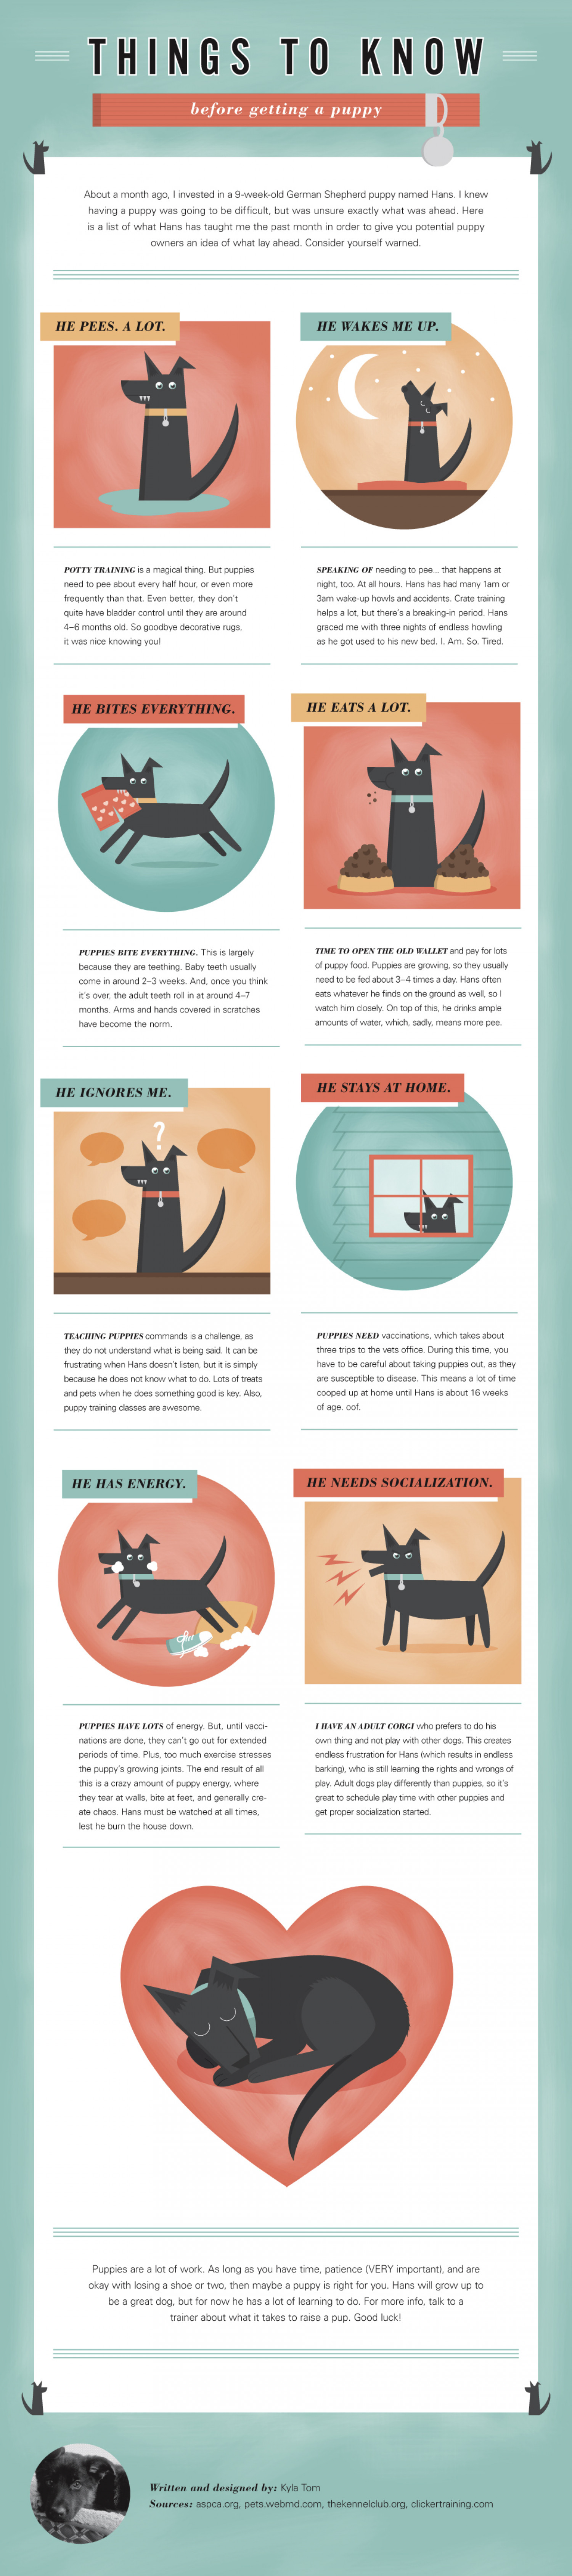 Things to Know Before Getting a Puppy Infographic